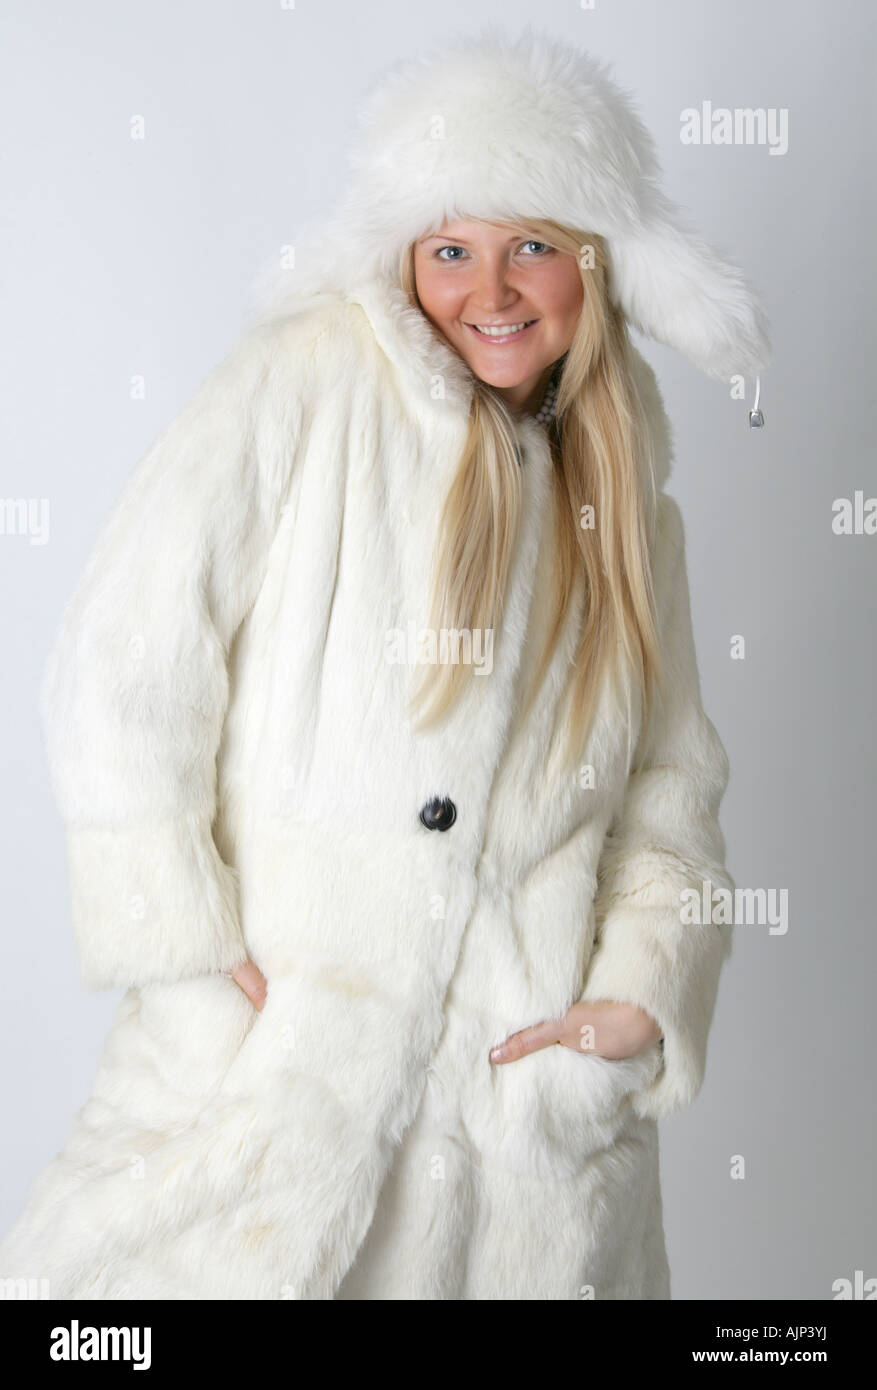 Blonde Girl In A White Fur Coat And Hat Stock Photo Royalty Free